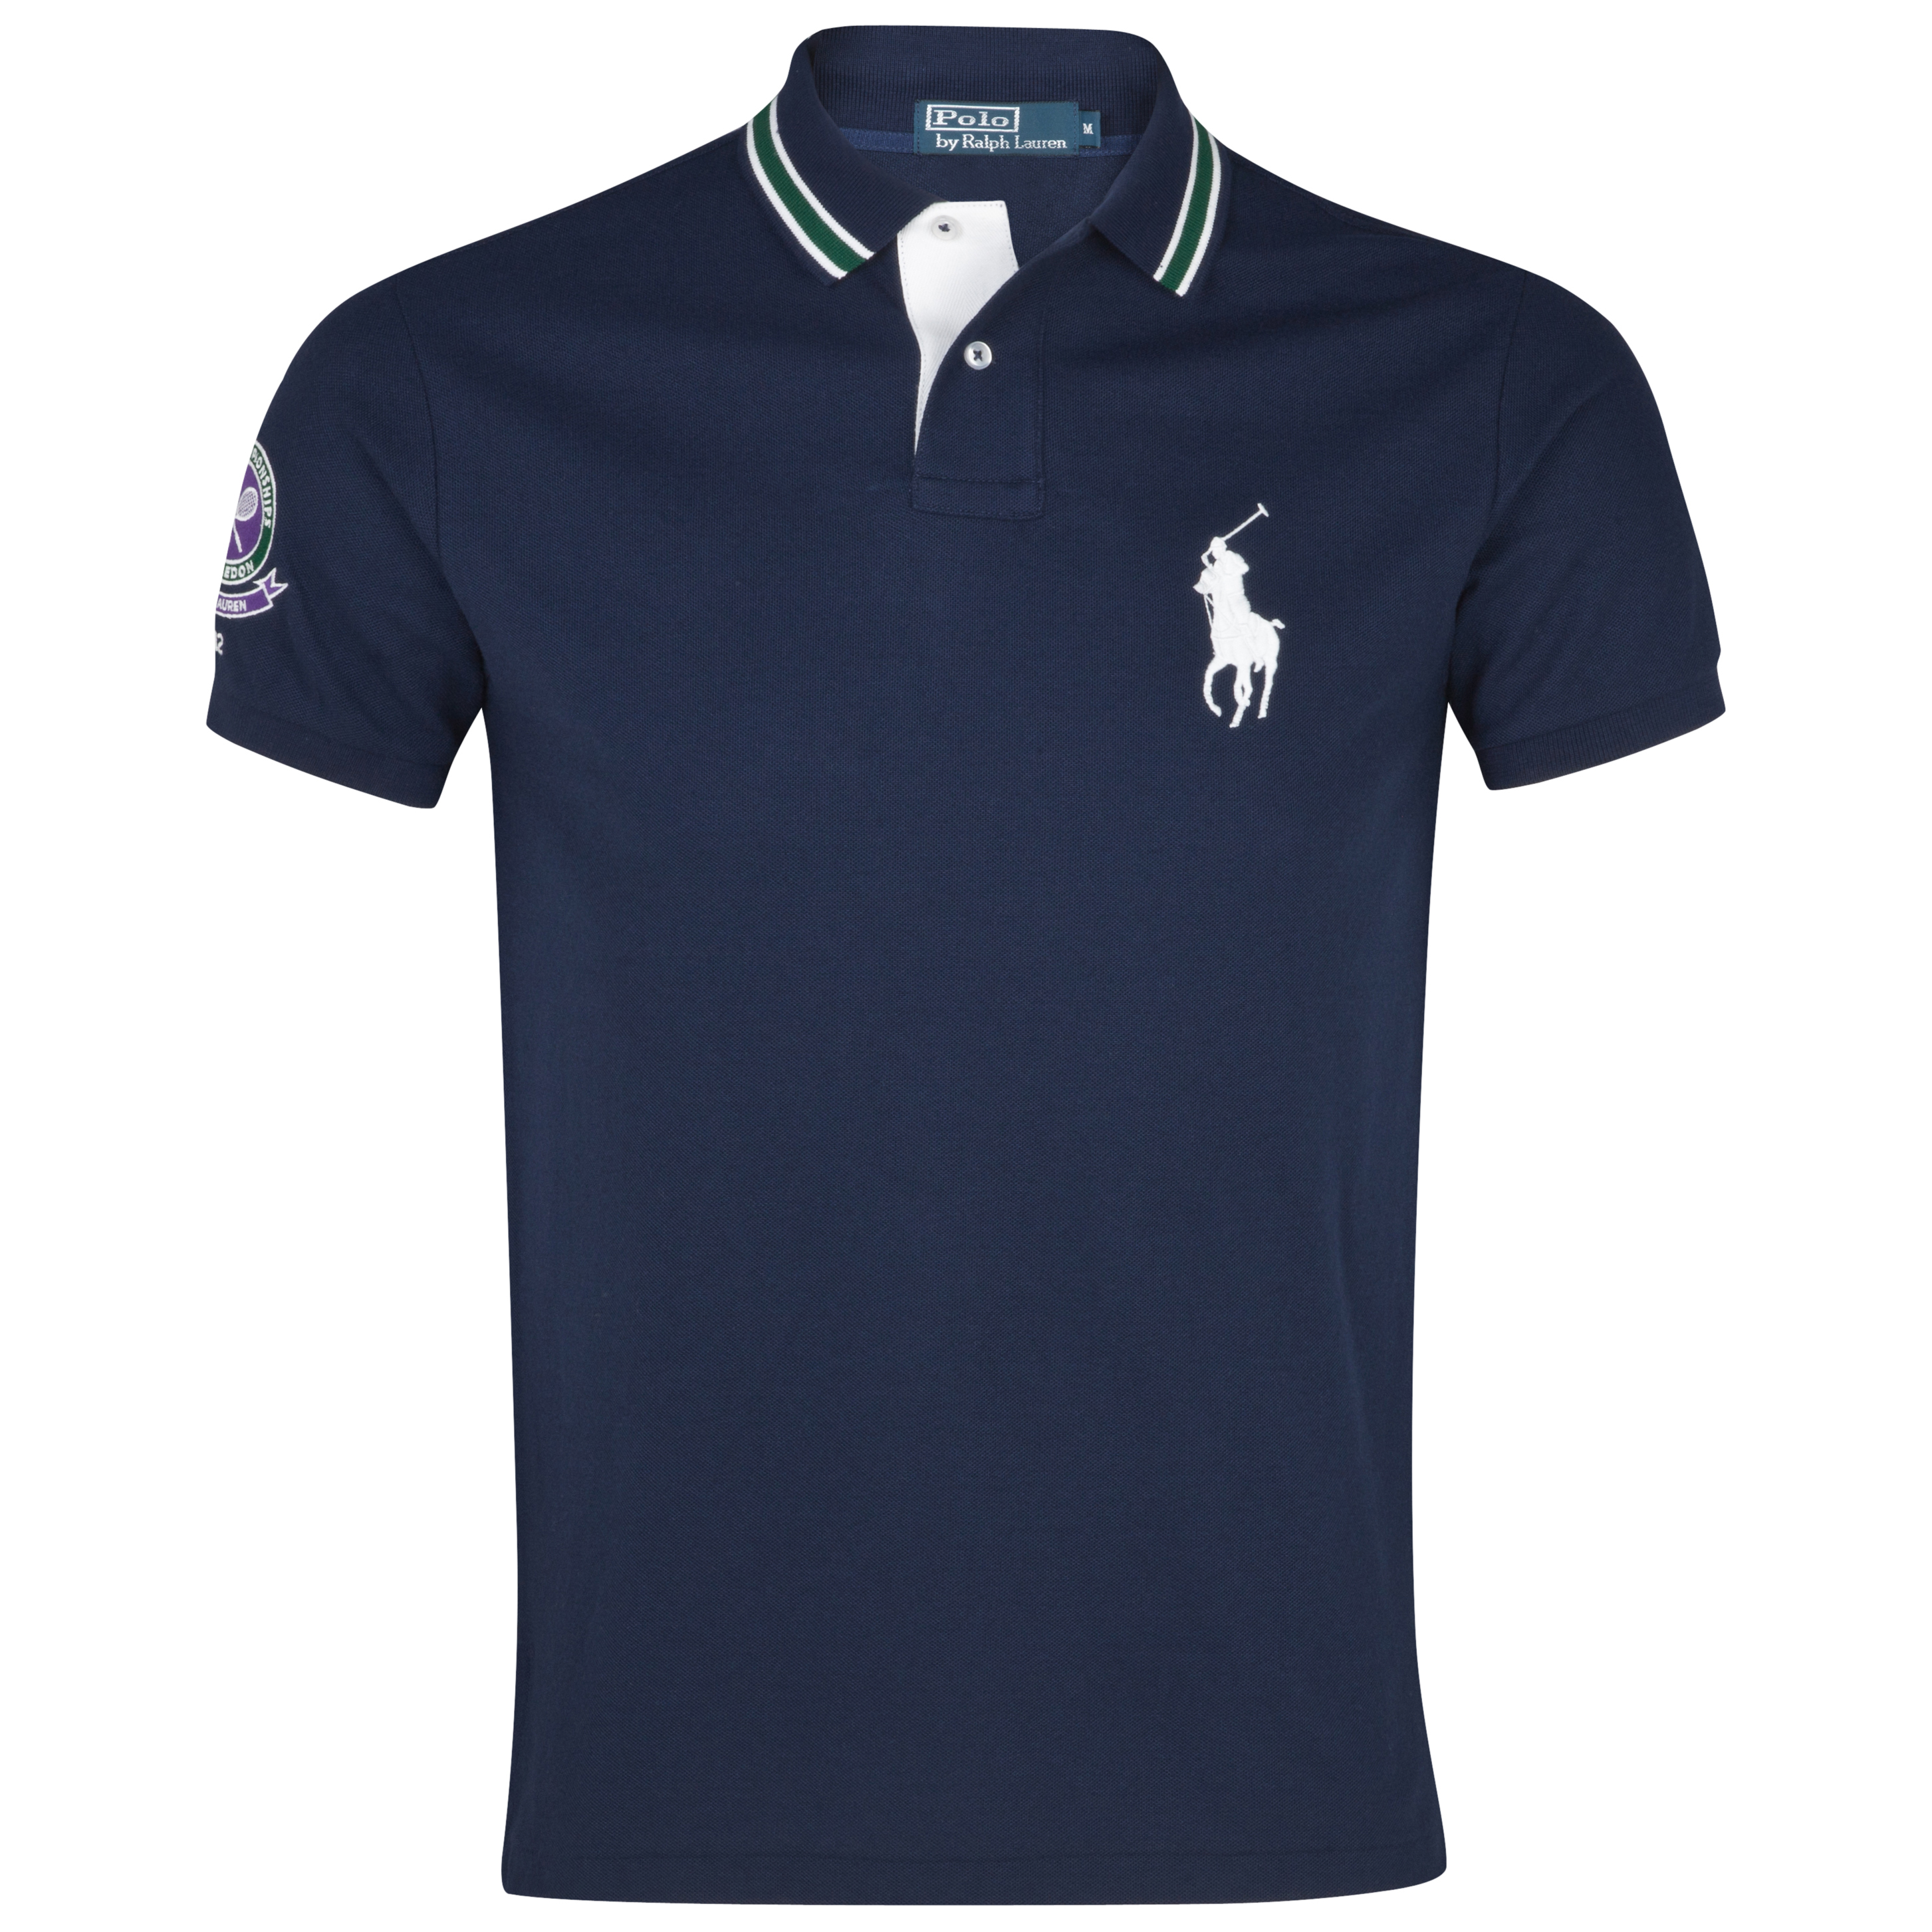 Polo Ralph Lauren Polo Ball Boy Cotton Pique Polo - French Navy - Infant Boys